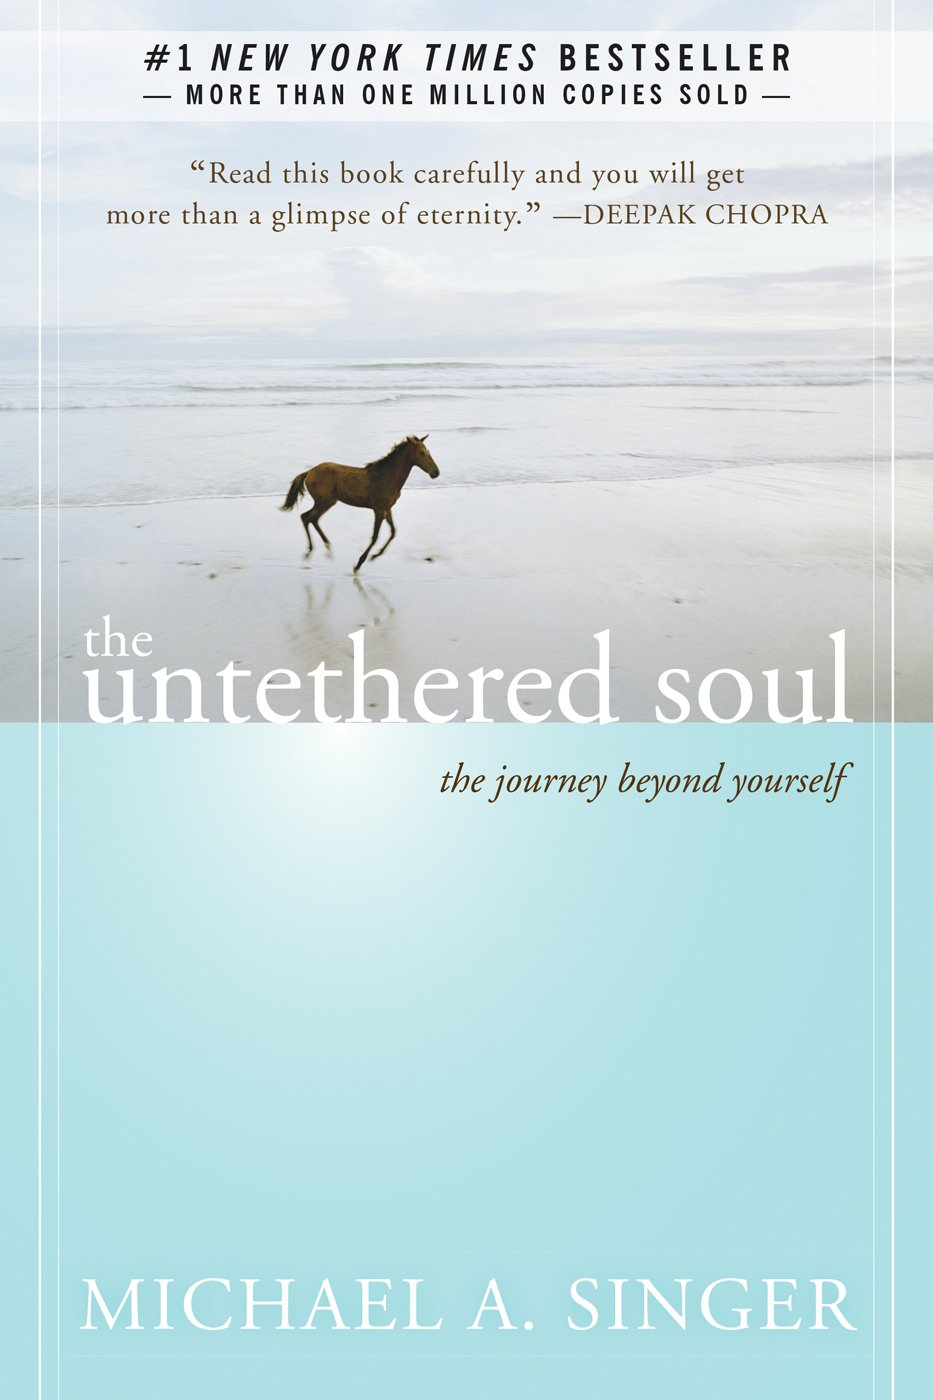 The Untethered Soul The Journey Beyond Yourself Book Image